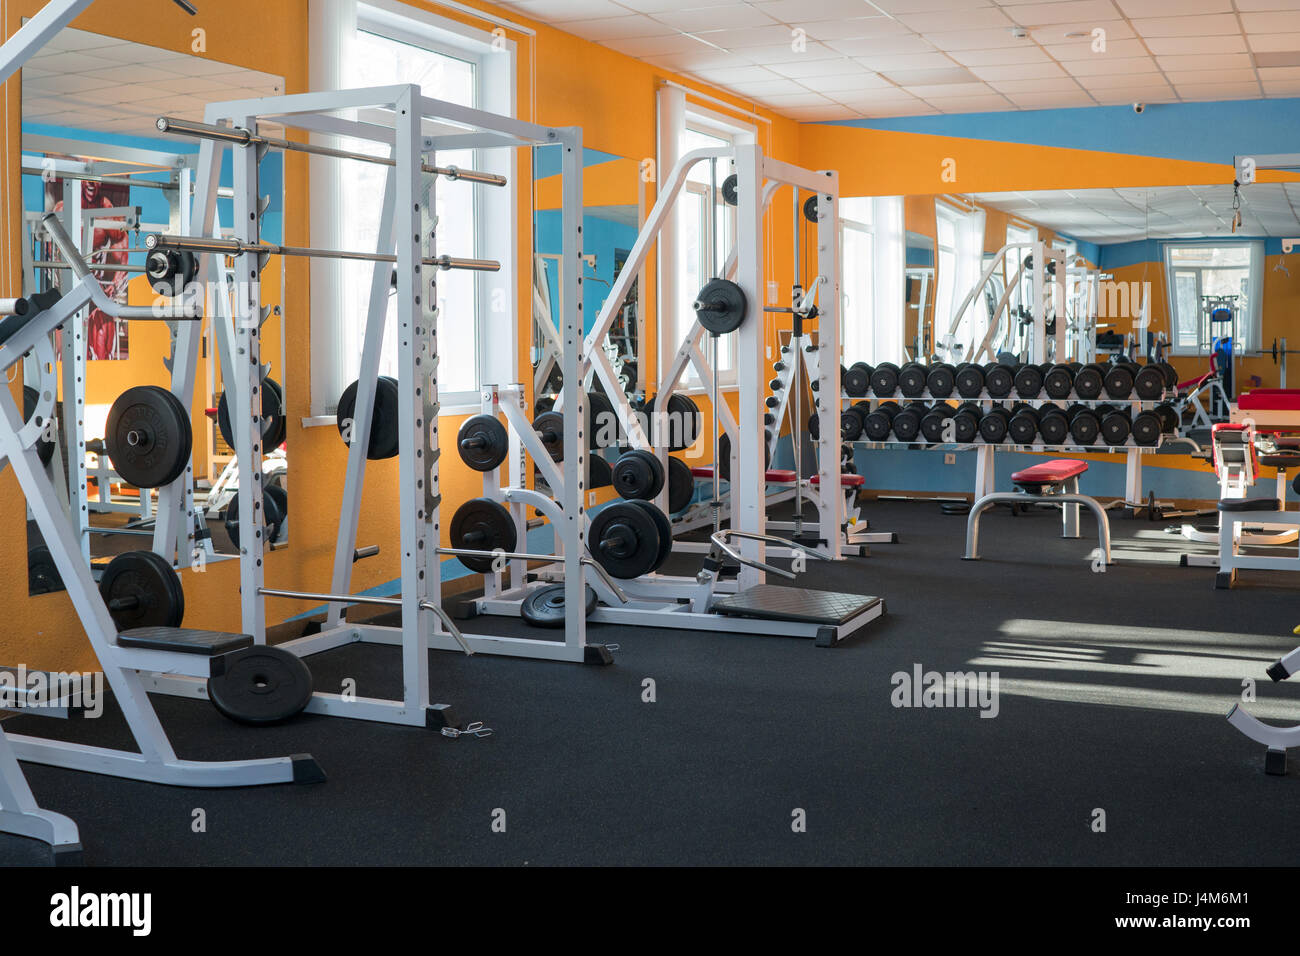 Modern fitness gym with exercise machines - Stock Image